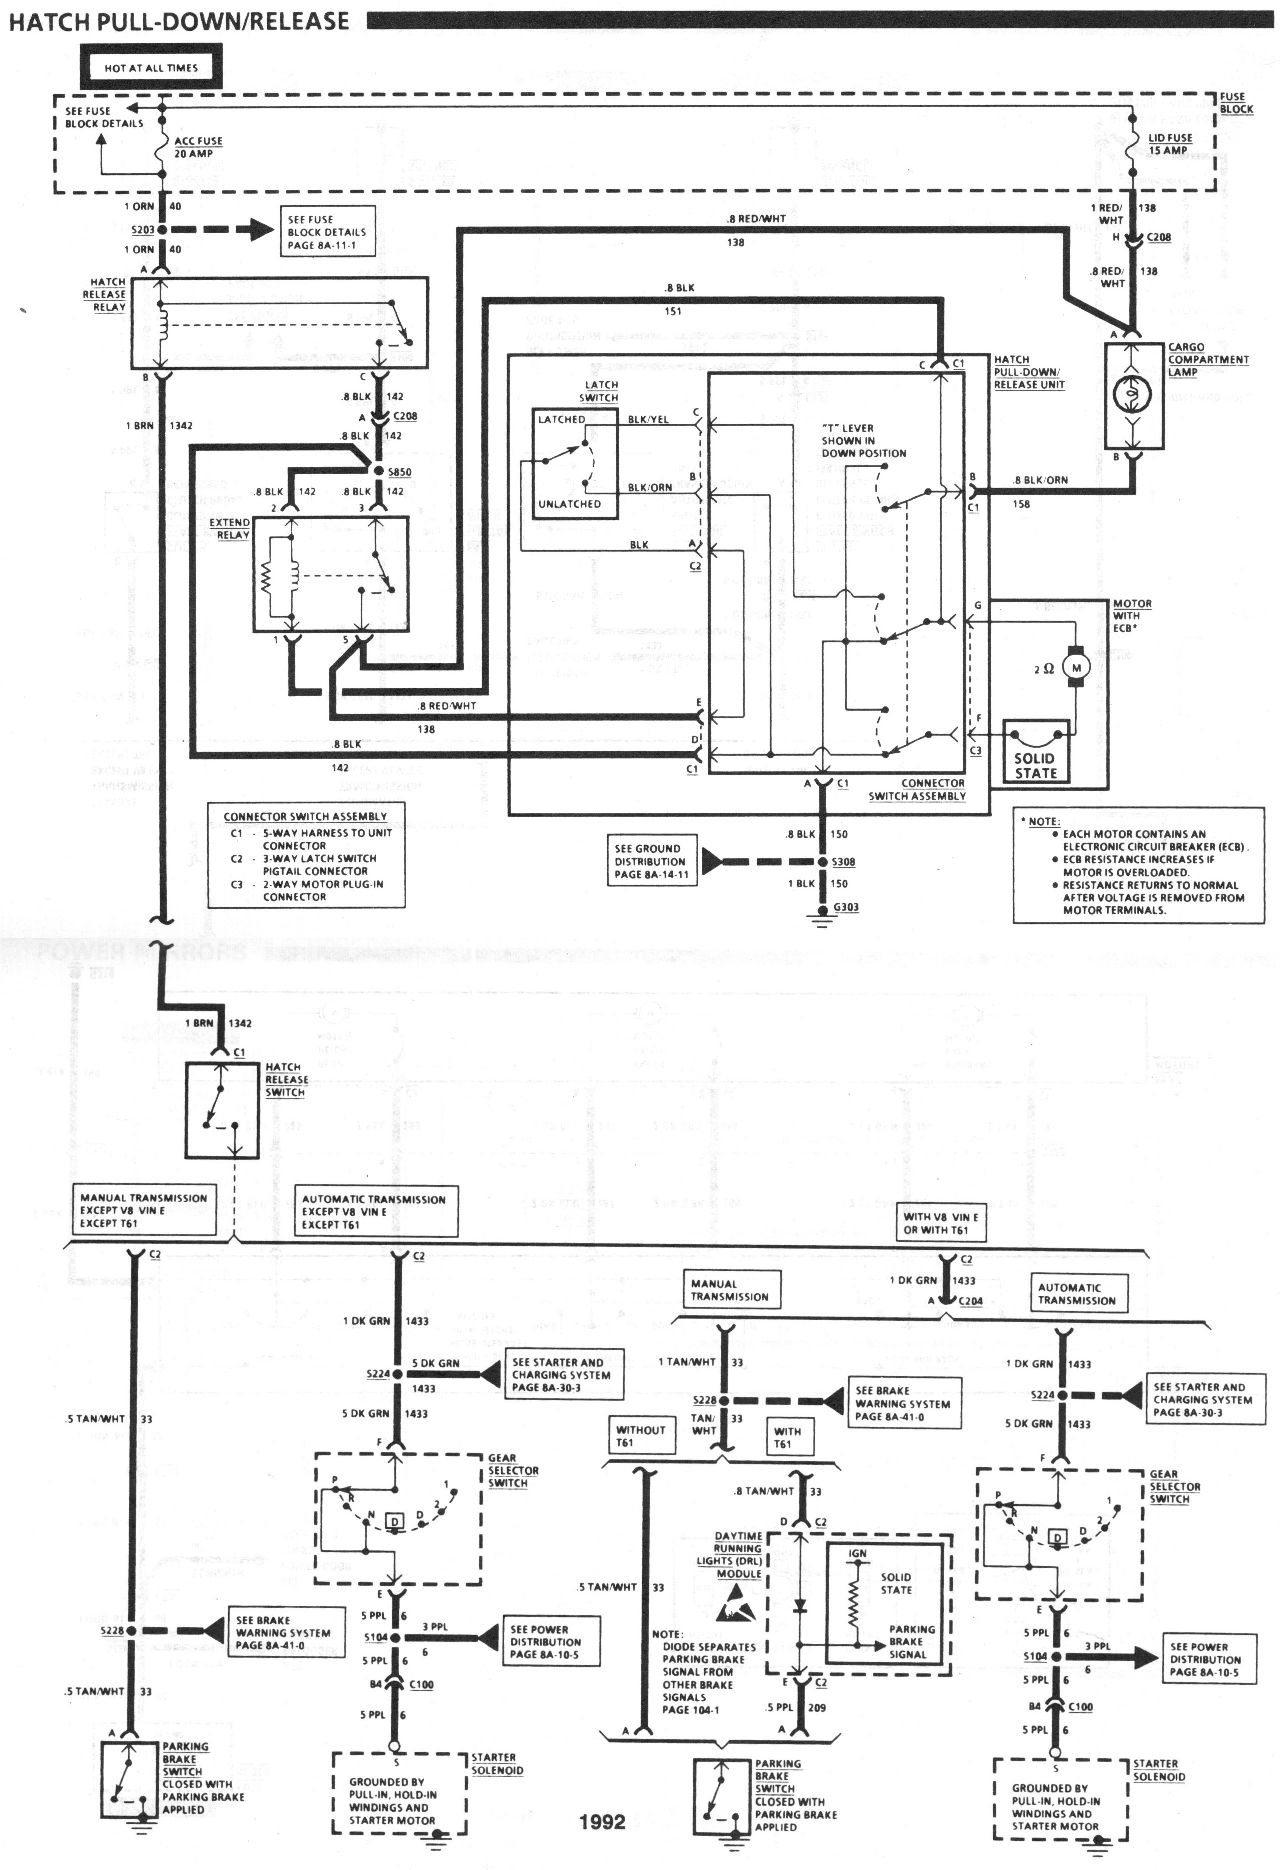 wiring a pull switch diagram